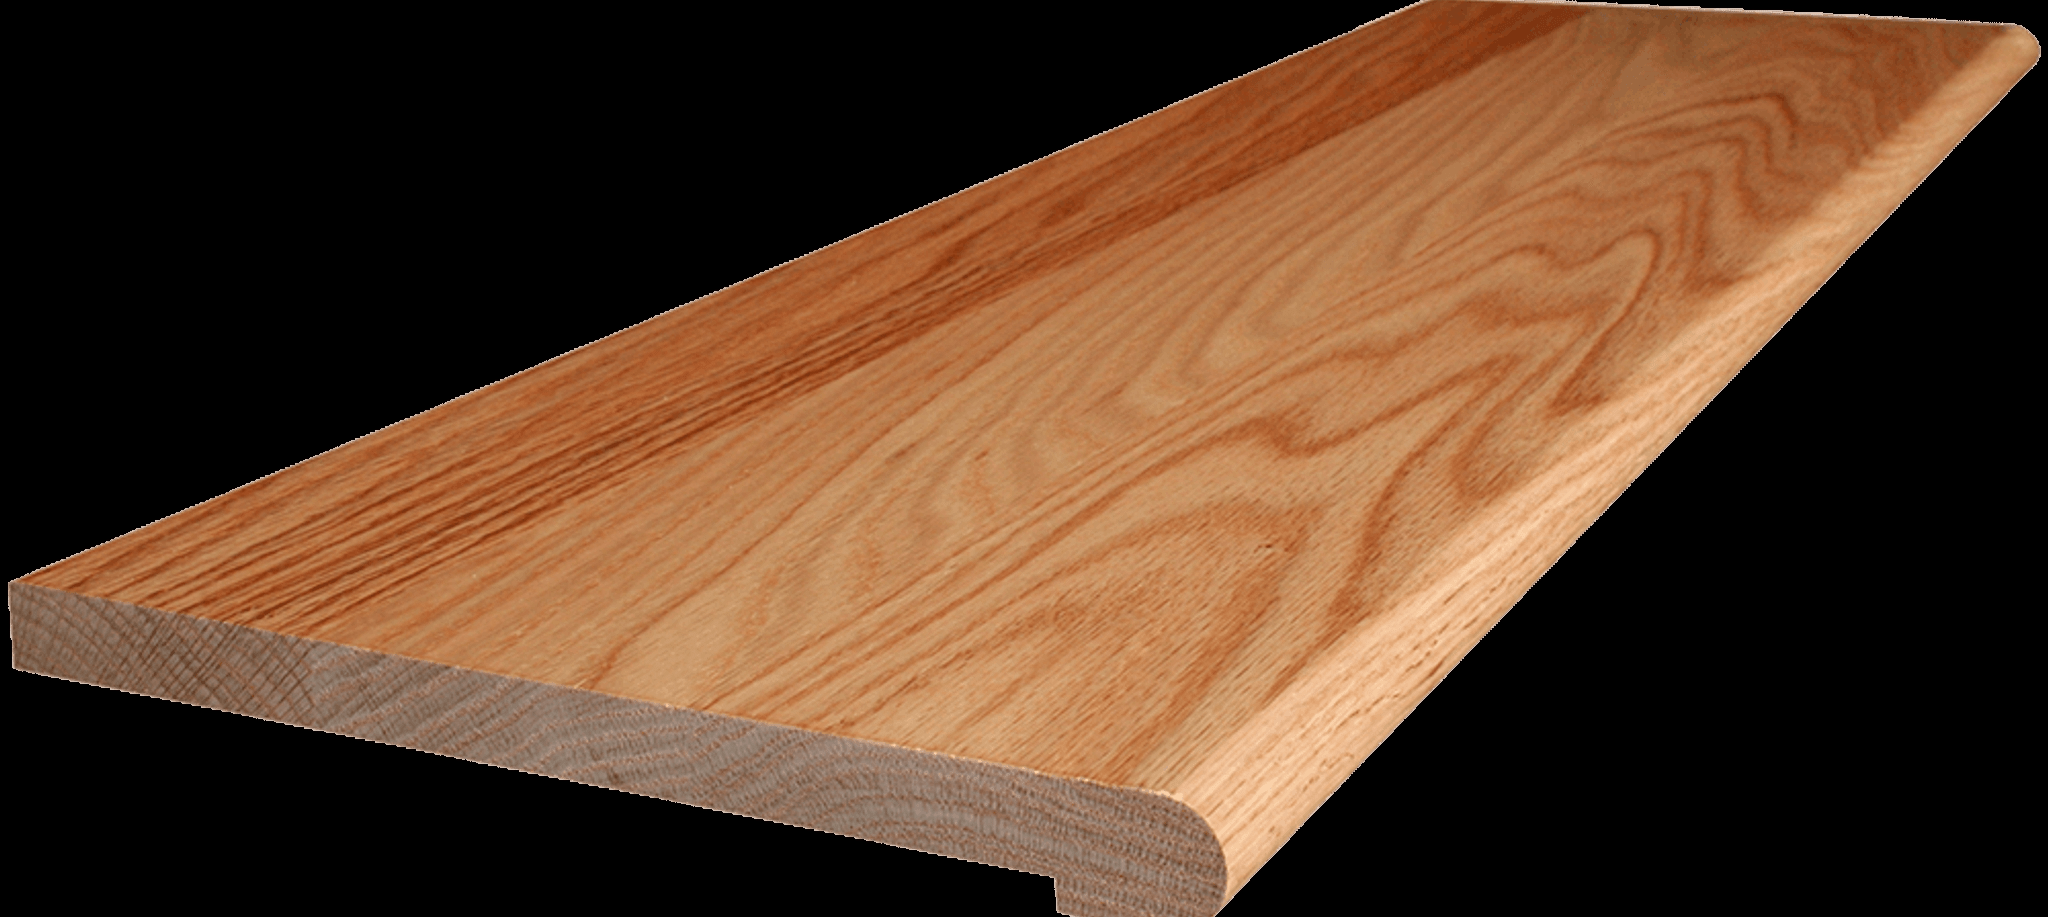 Red Oak Stair Tread | 36 Oak Stair Treads | Stair Parts | Red Oak | Lowes | White Oak | Unfinished Solid